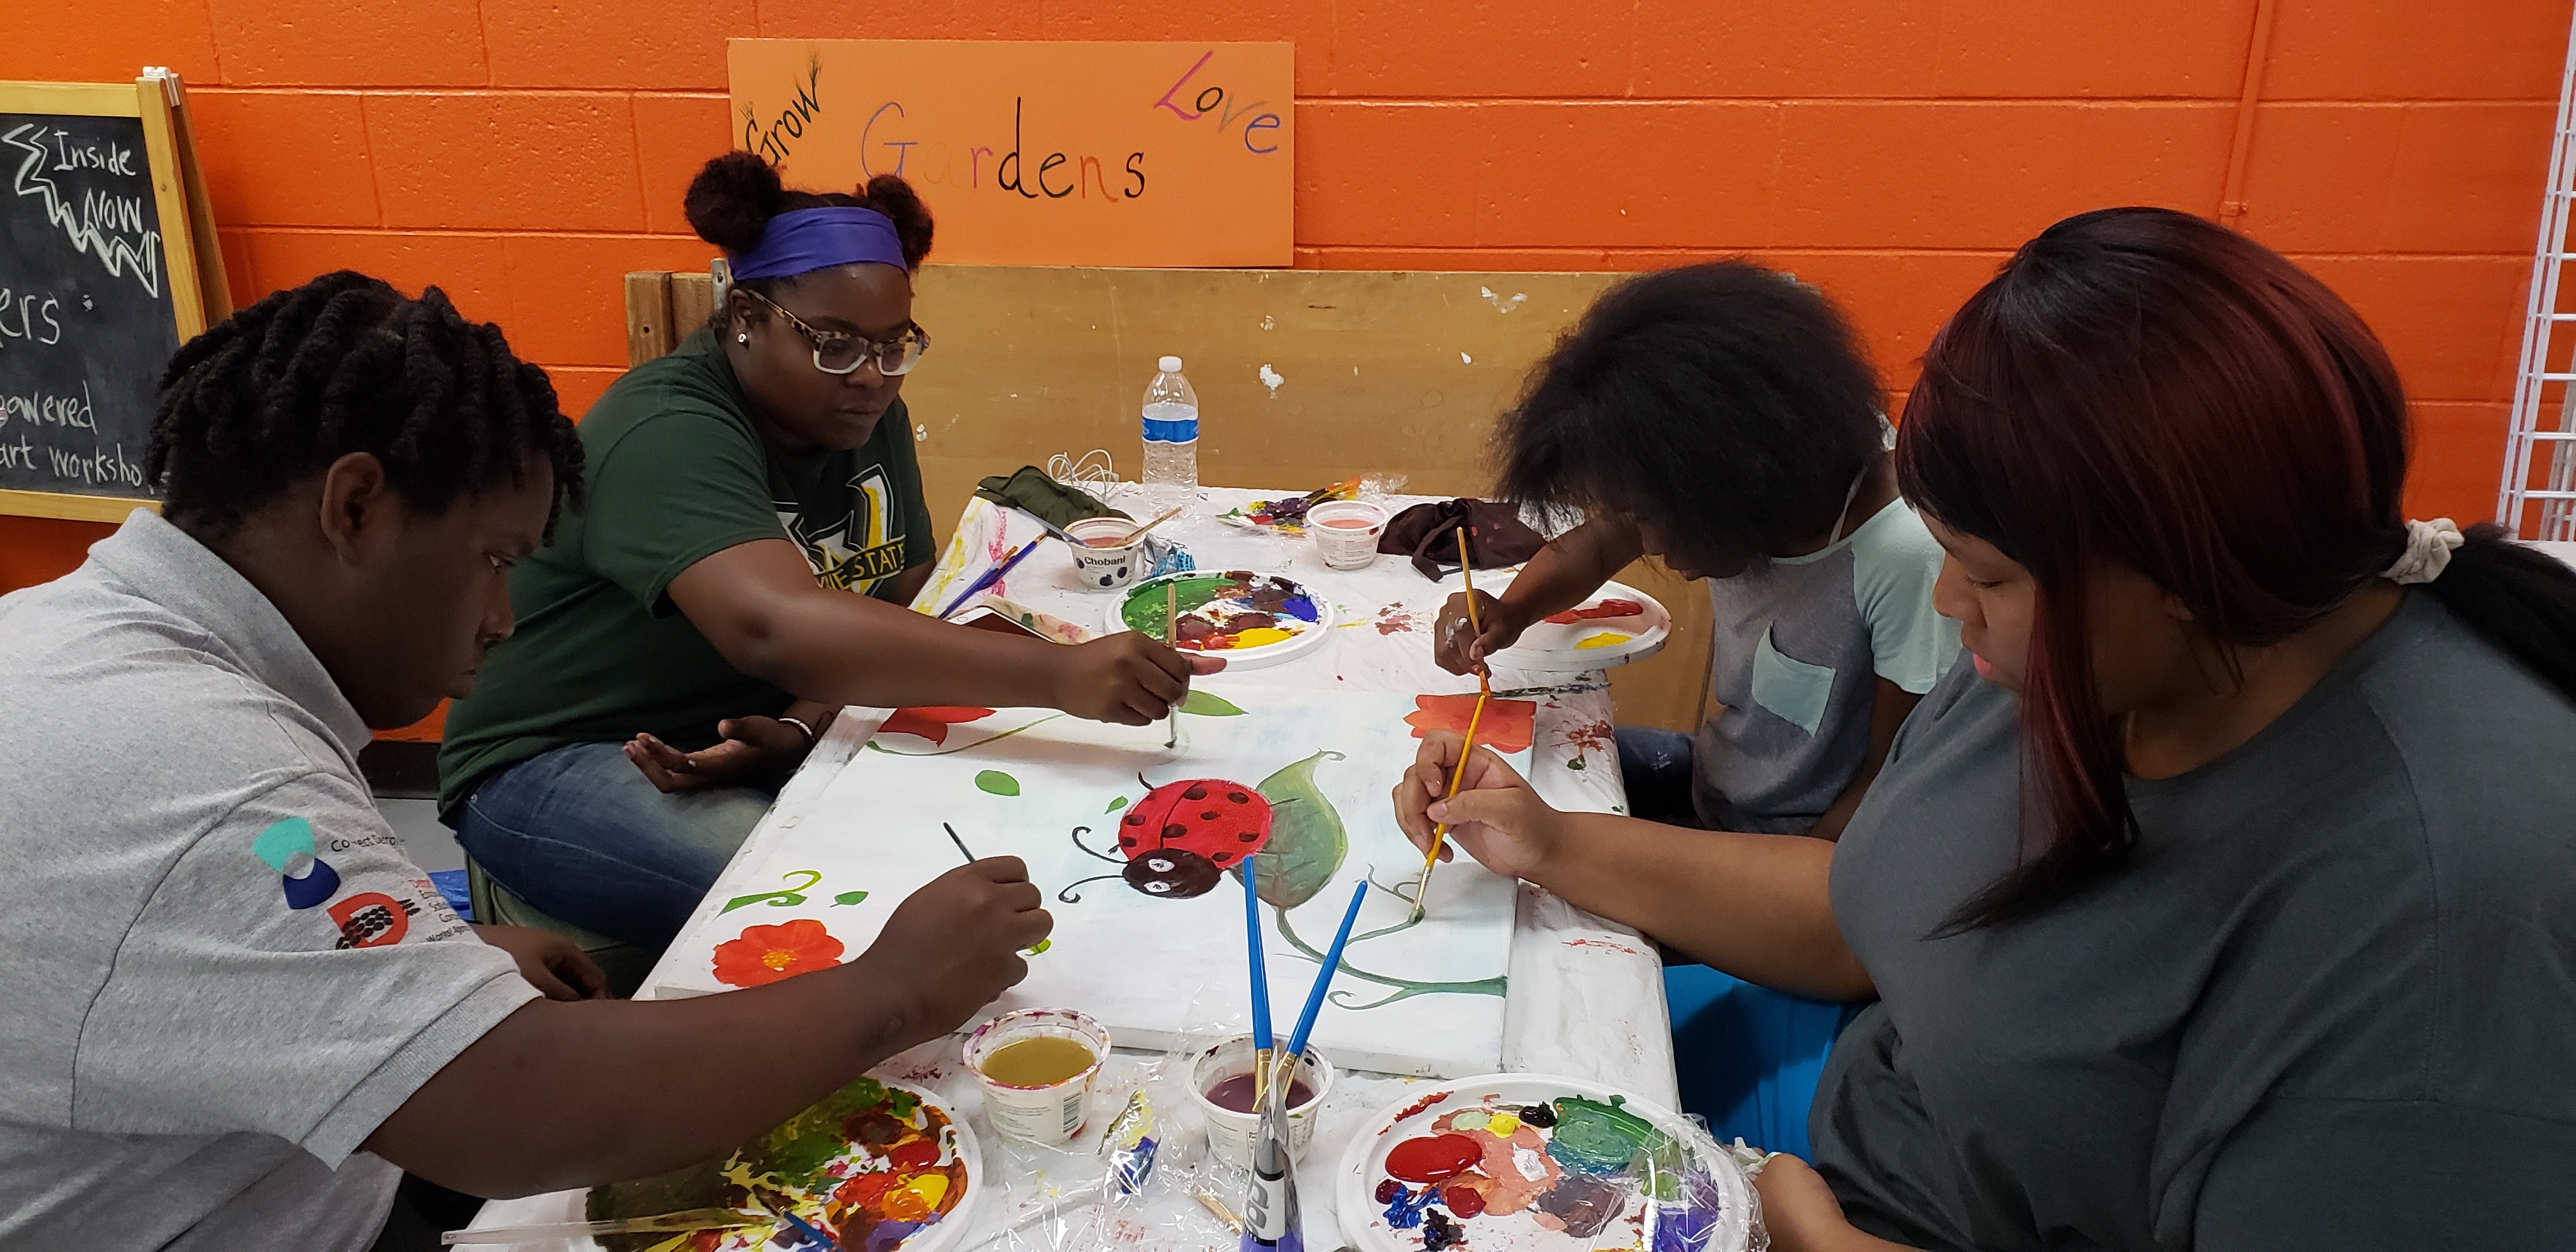 Mint summer workers learn teamwork as they work together on a nature and ladybug painting.